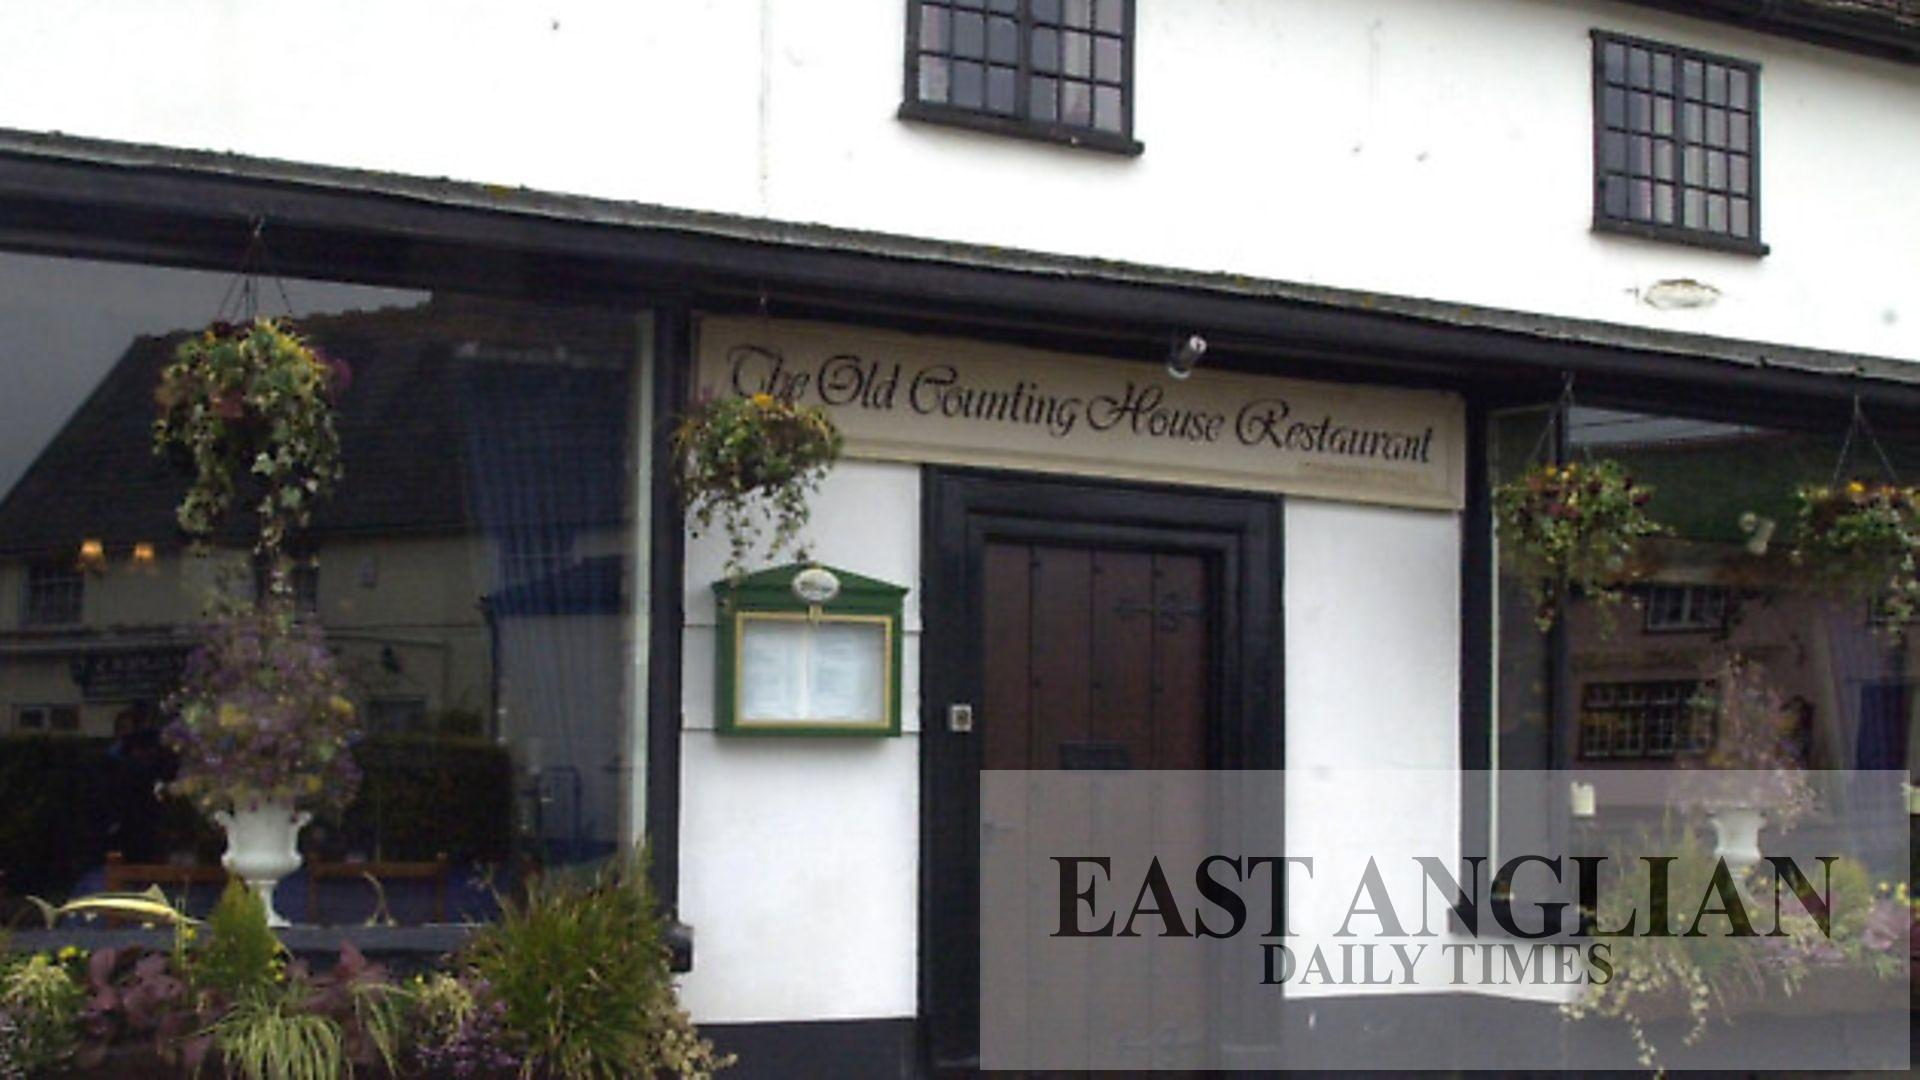 Haughley Four Workers Arrested During Immigration Raid At Indian Takeaway The Old Counting House East Anglian Daily Times